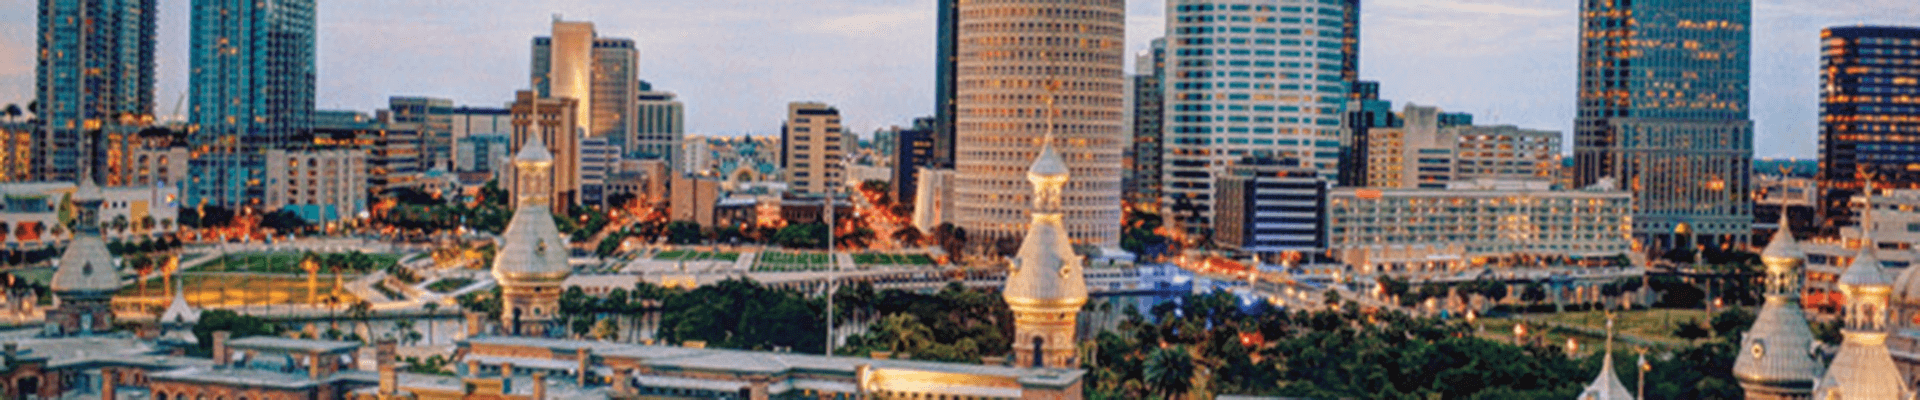 5 things you need to know about the University of Tampa MBA